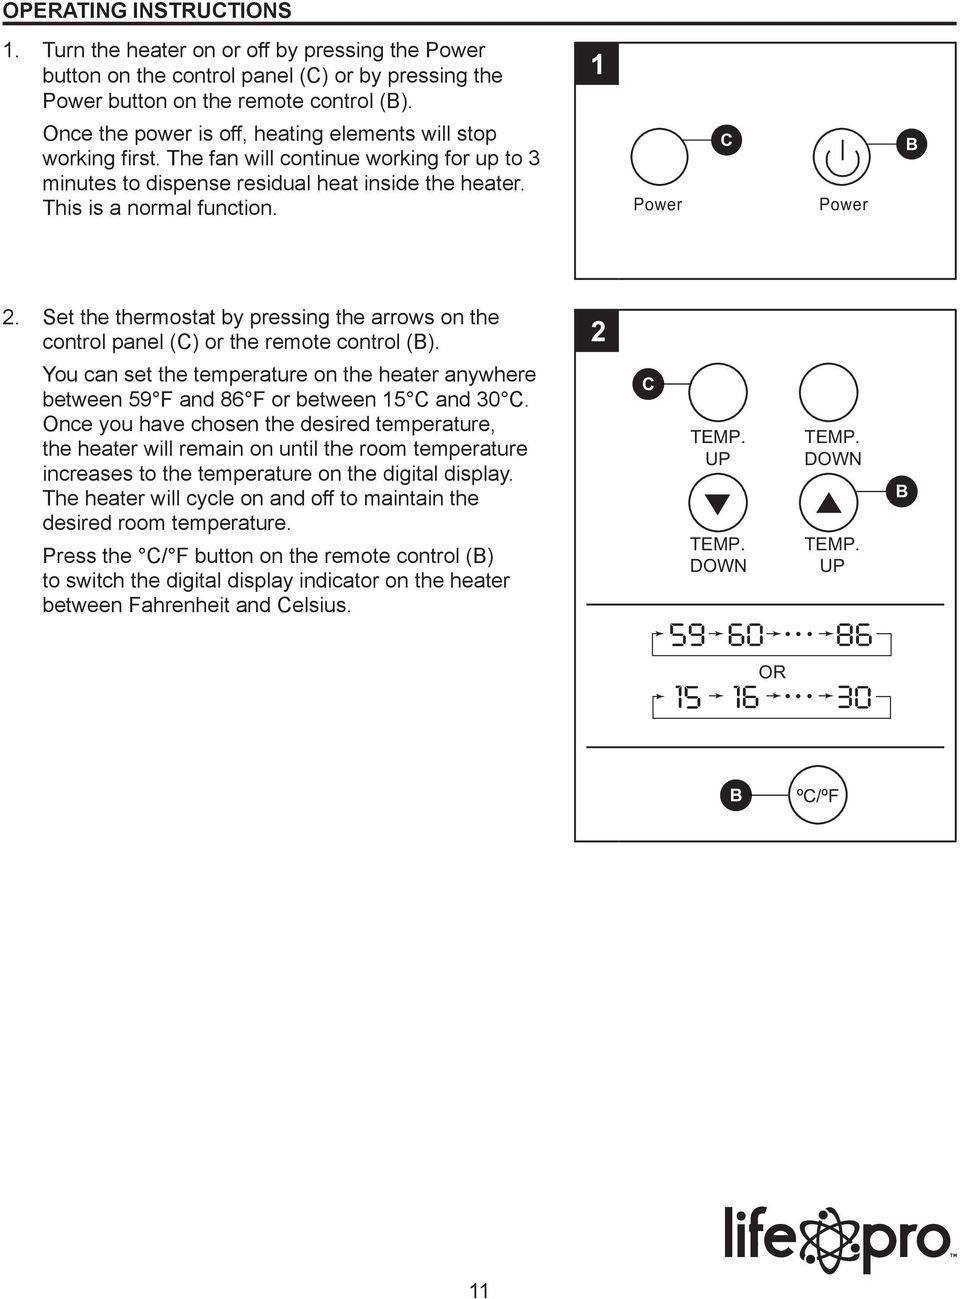 medium resolution of power c power 2 set the thermostat by pressing the arrows on the control panel